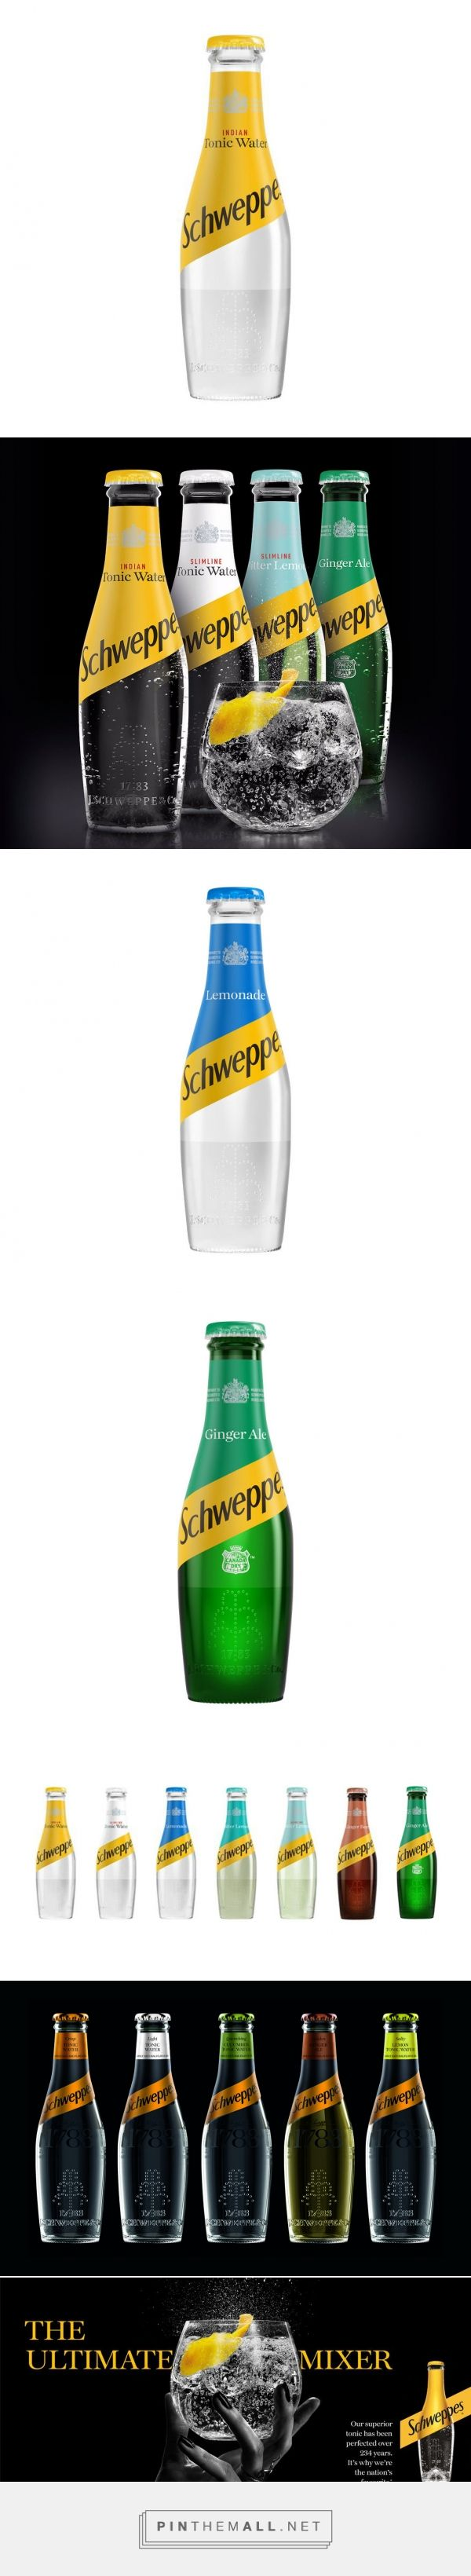 Schweppes logo and bottle redesign for the UK by Coca Cola and Kenyon Weston.  Source: Brandemia. Pin curated by #SFields99#packaging #design #inspiration #ideas #rebranding #product #creative #structural #drinks #beverages #soda #tonic #water #Schweppes #logotype #bottle